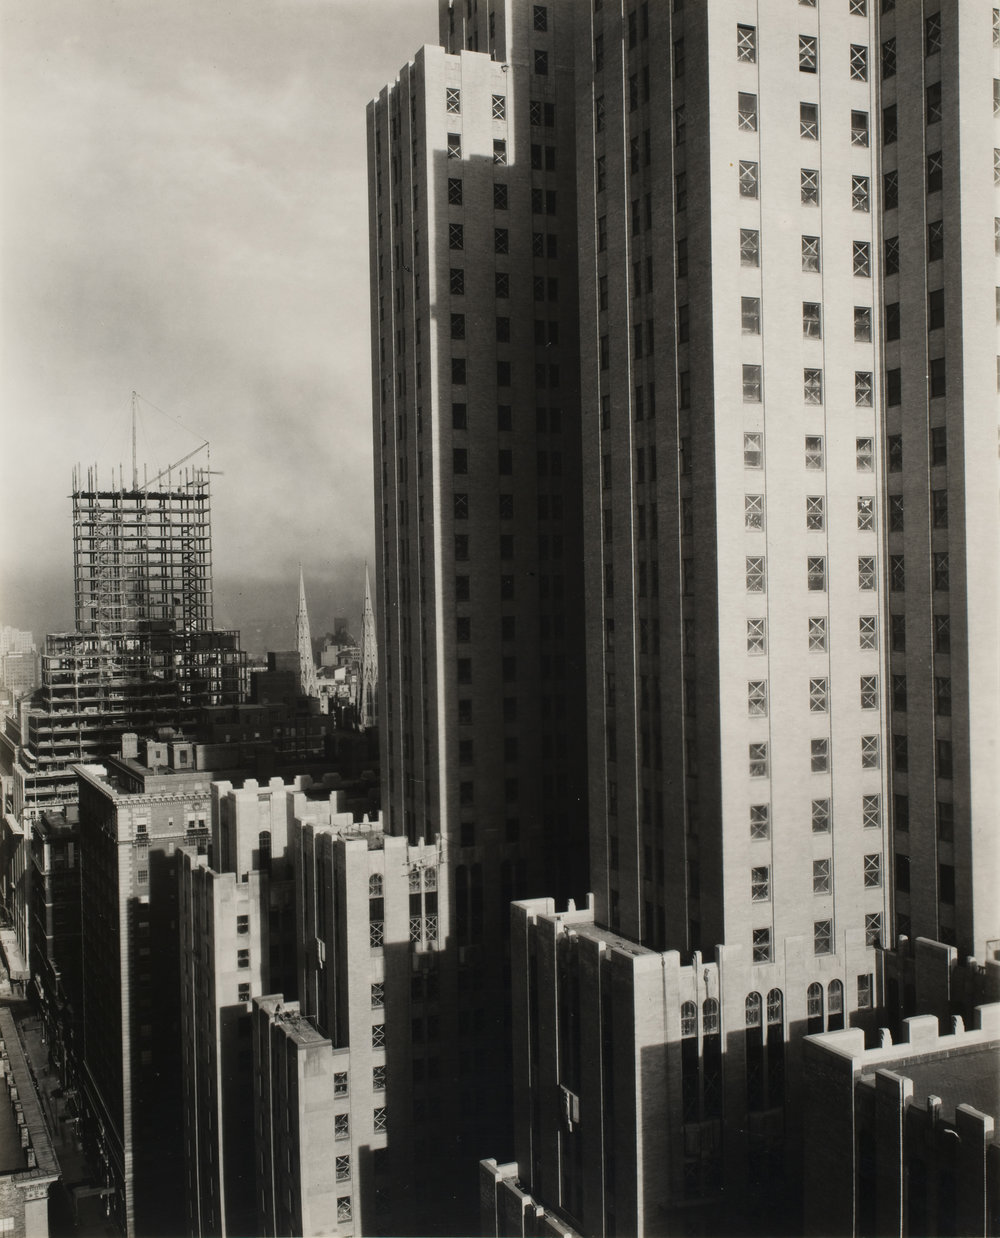 America's Cool Modernism - by Mark Rapaport